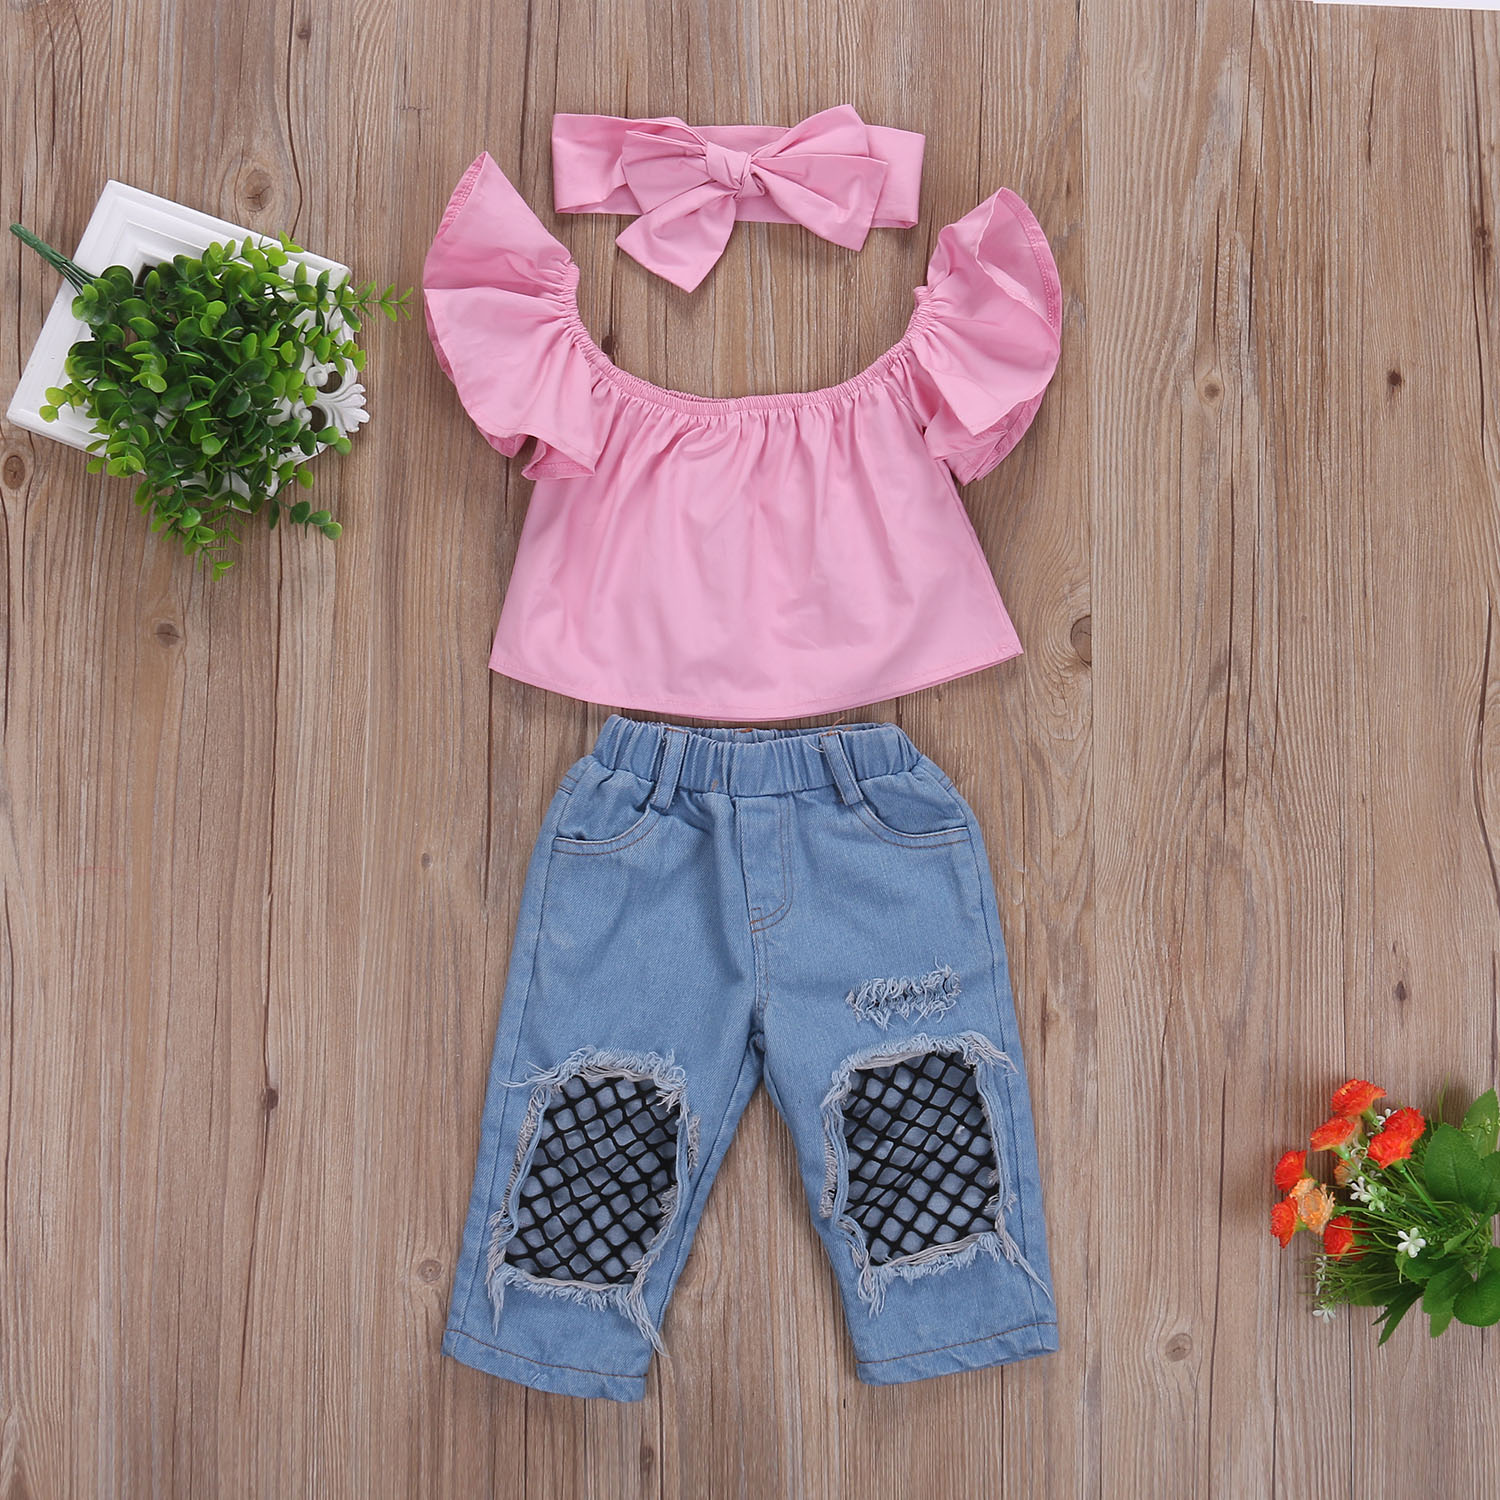 Summer Pudcoco Cute Baby Girls Clothes Set 3Pcs Toddler Kids Girl